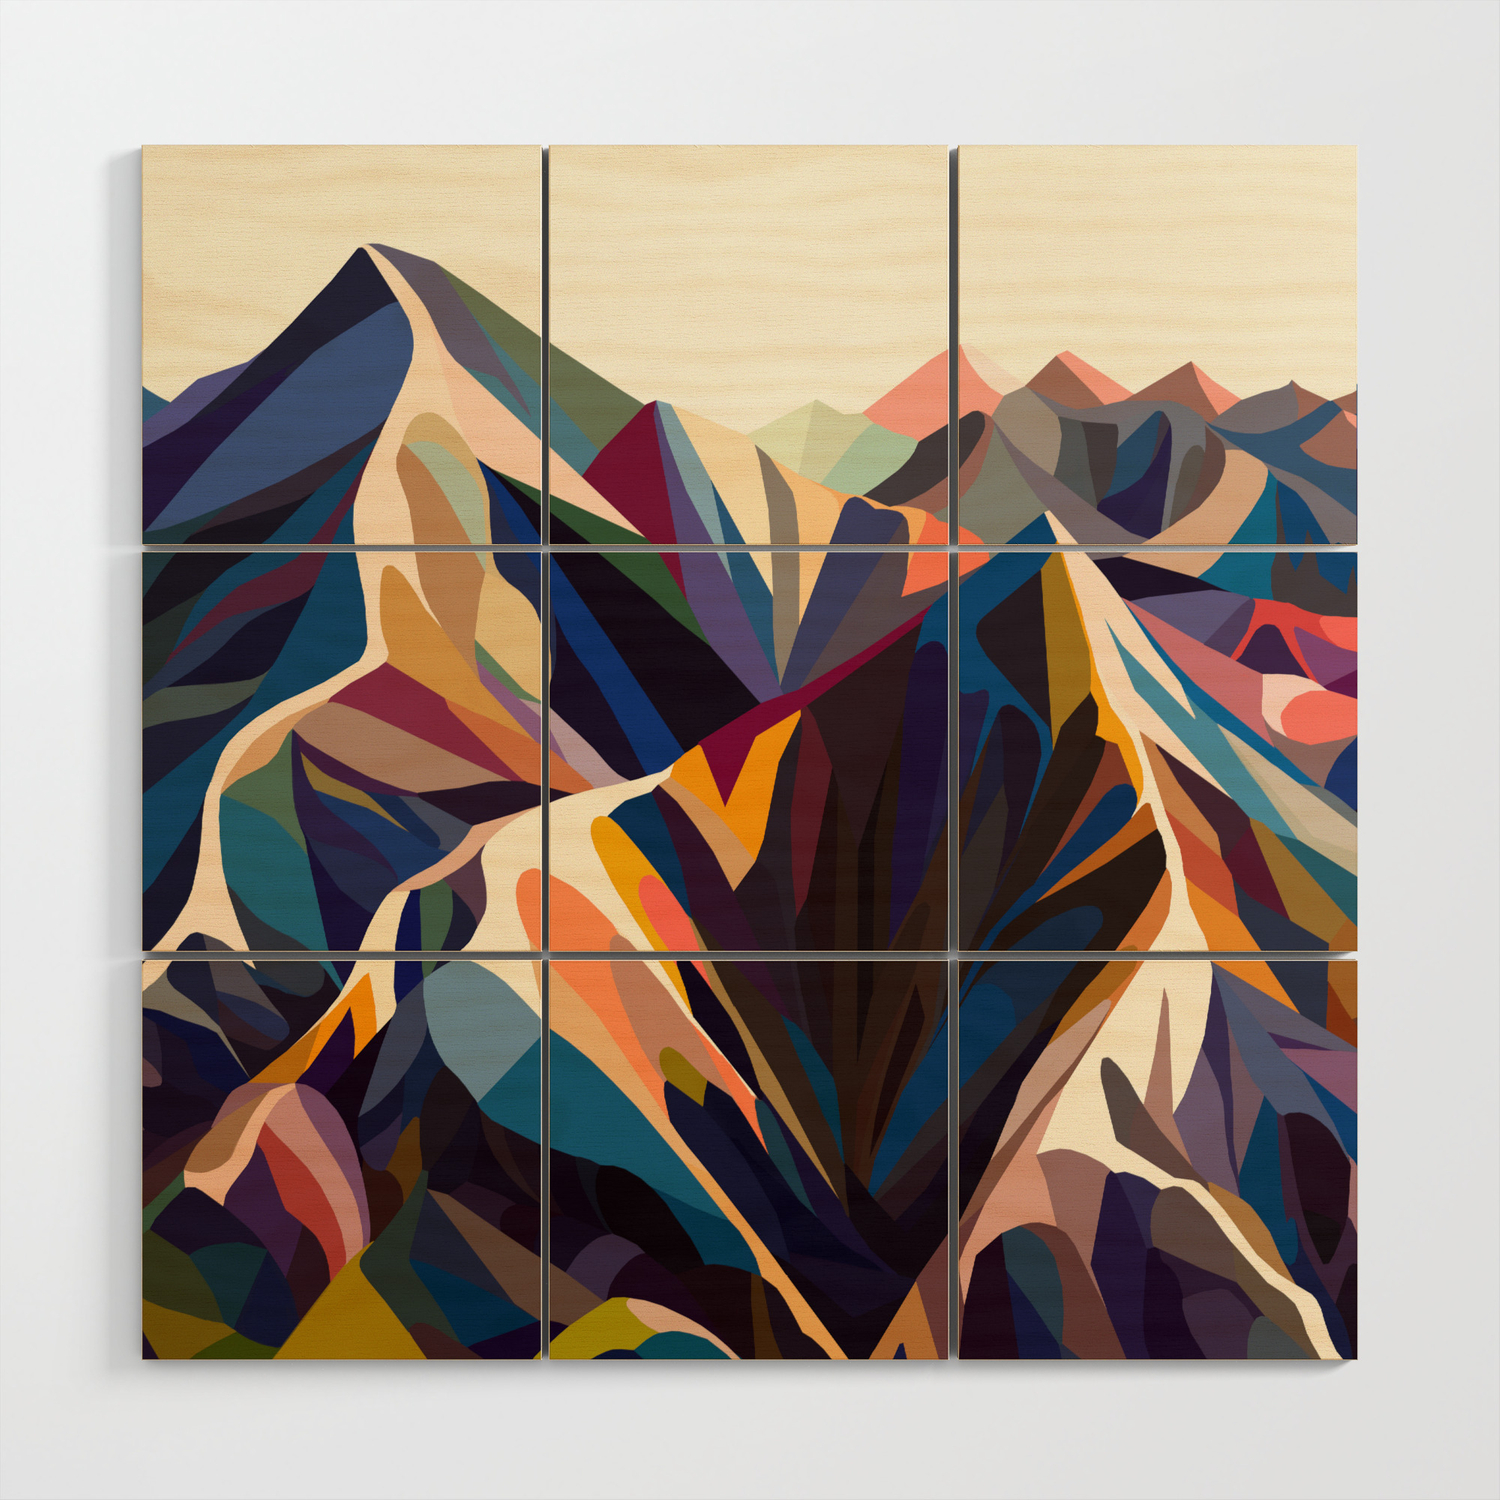 Triangle wood sign,Mountain wall art,Hanging wall art mountains Wood mountains triangle Wood mountains wall decor Mountains wood wall art